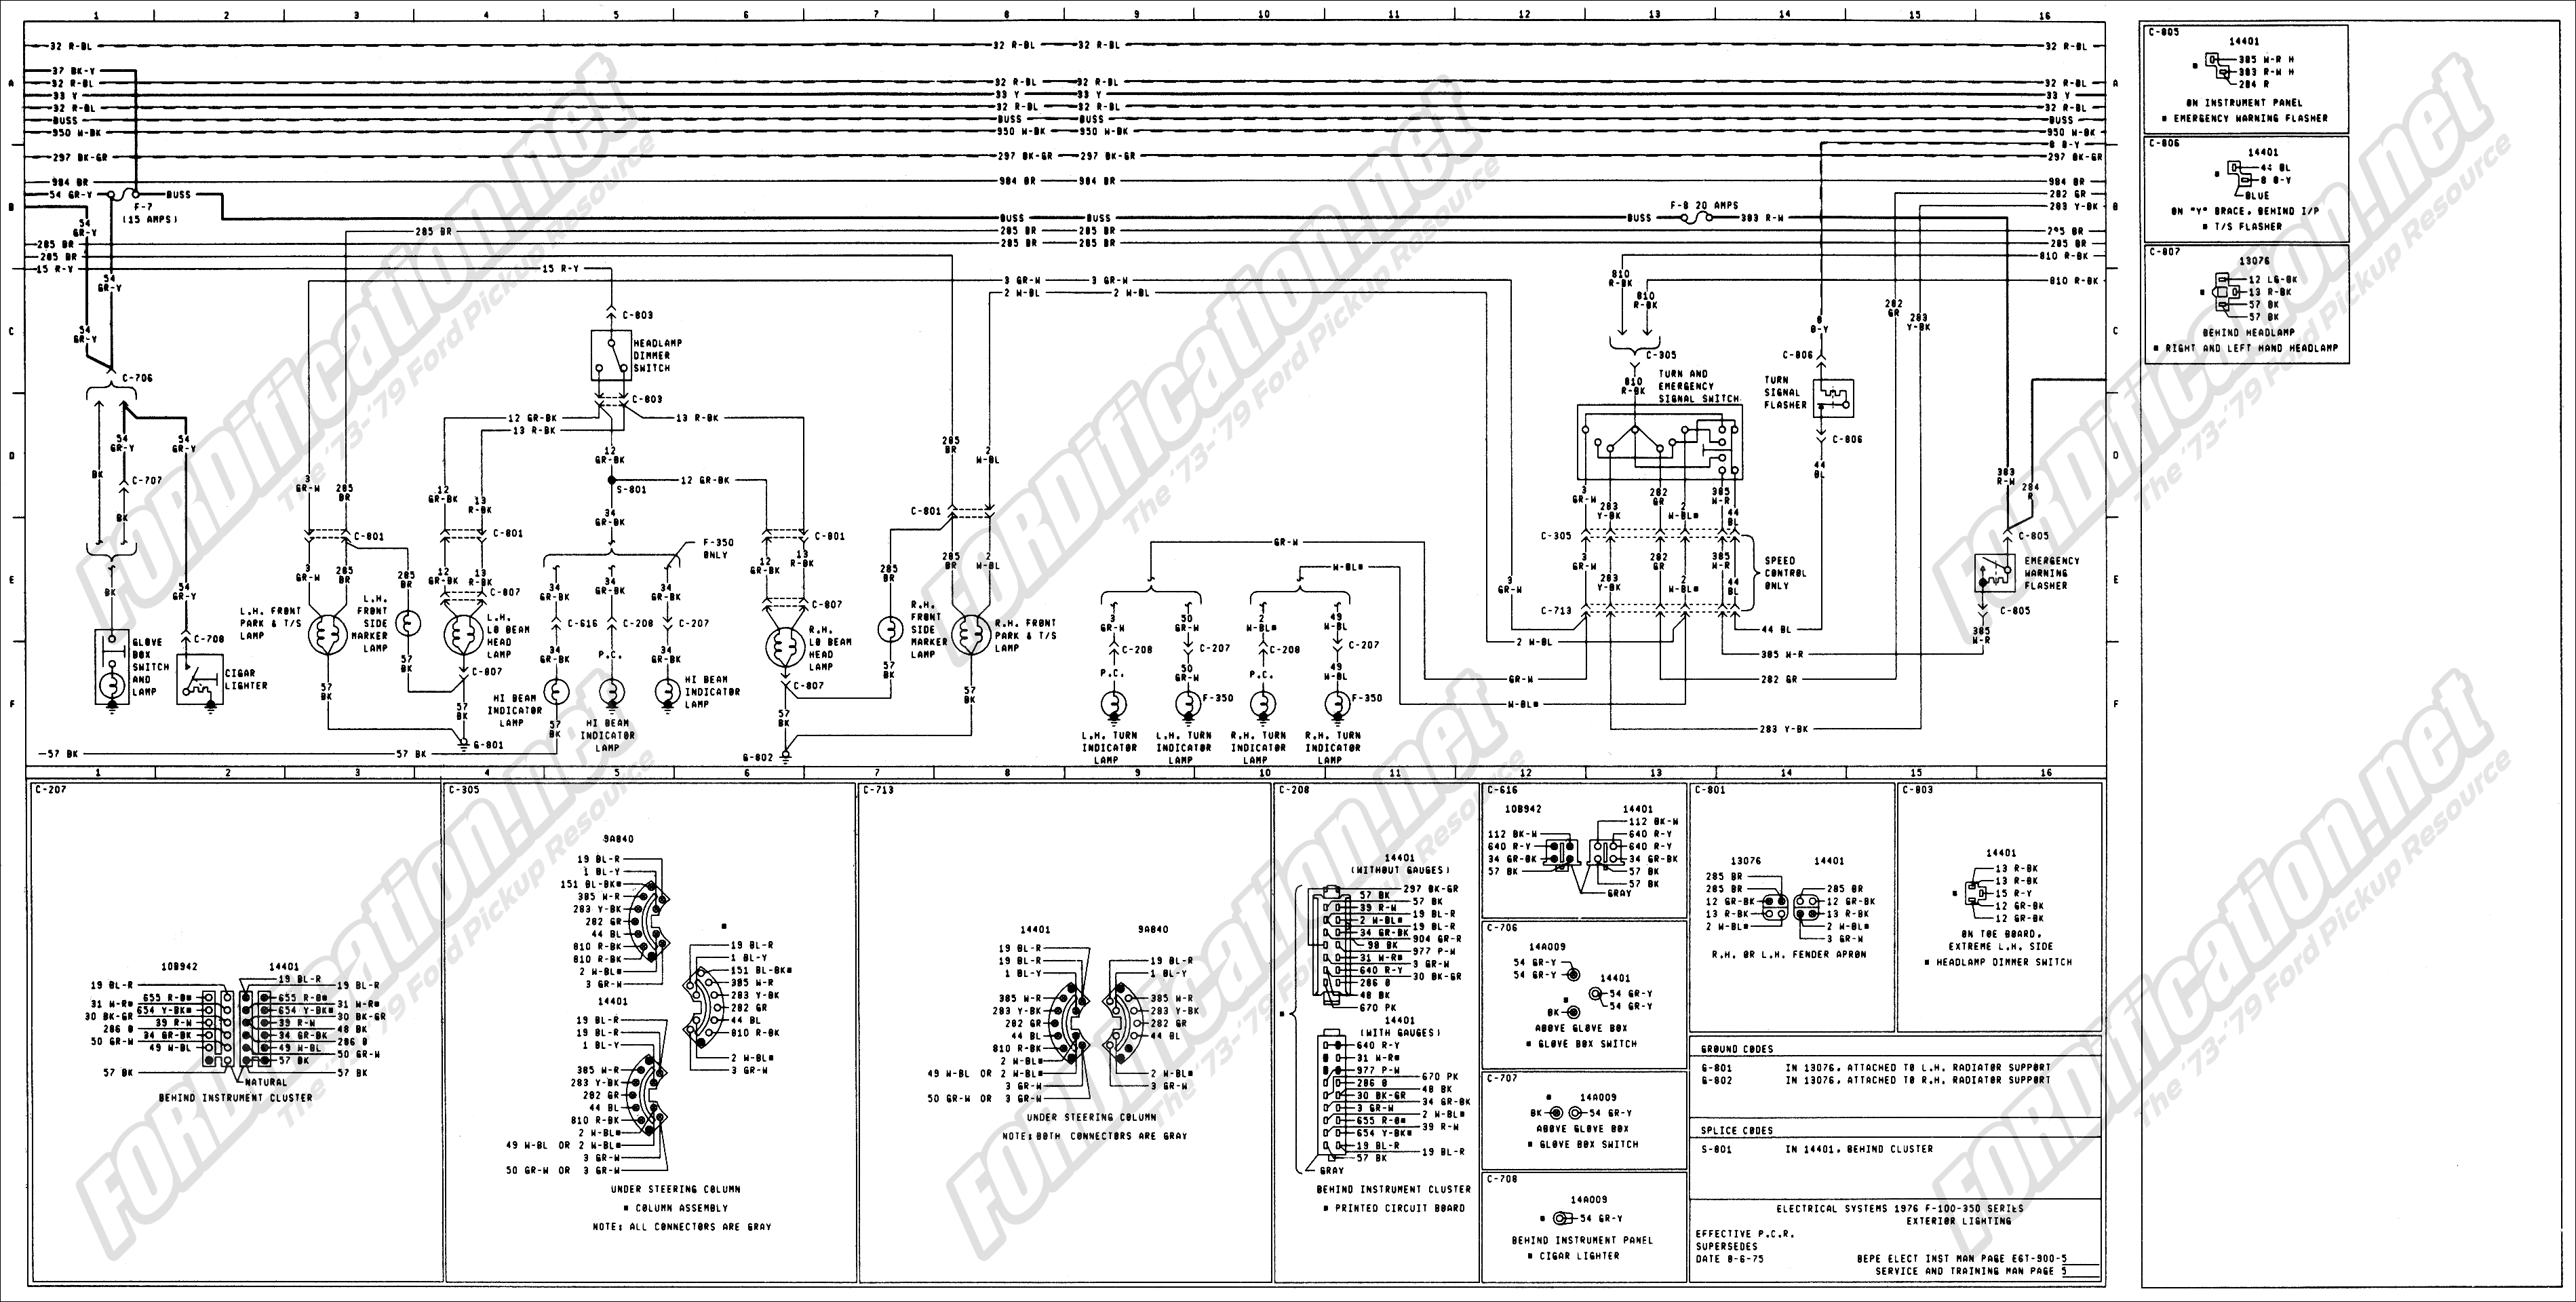 1977 ford 351 wiring diagram on 1973 1979 ford truck wiring diagrams & schematics fordification net Ford 351 B Family 1979 ford f150 wiring diagram